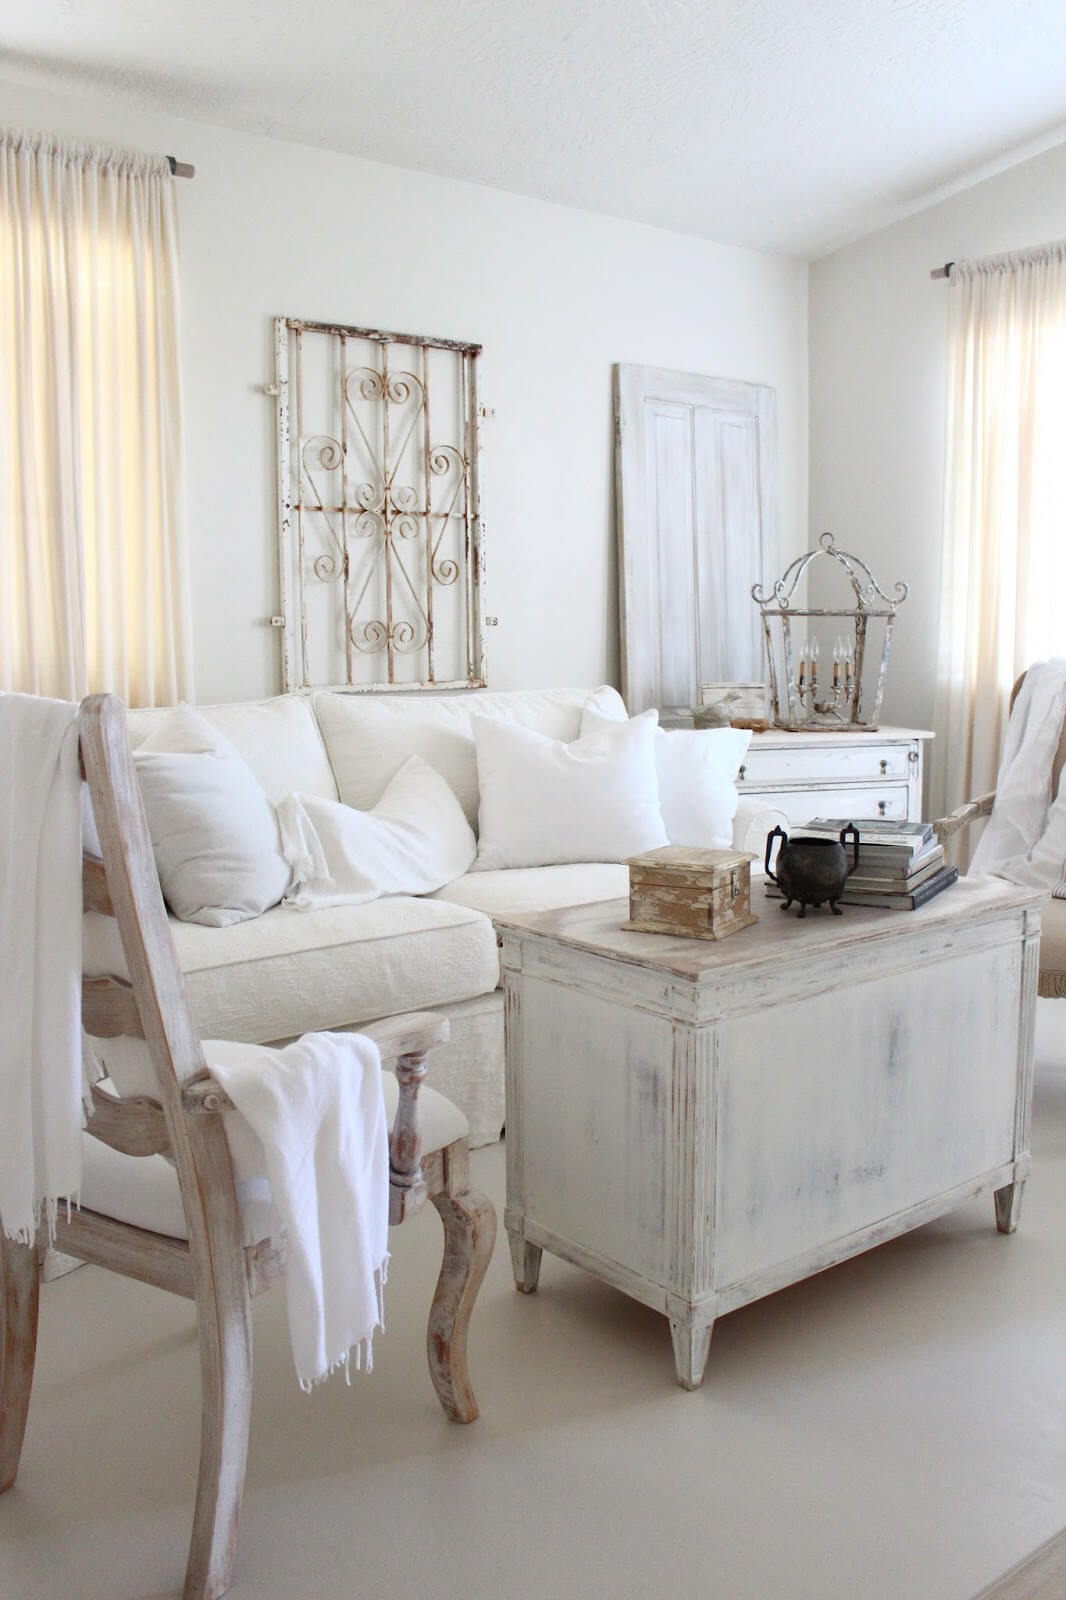 Farmhouse-Inspired Shabby Chic Rustic Décor